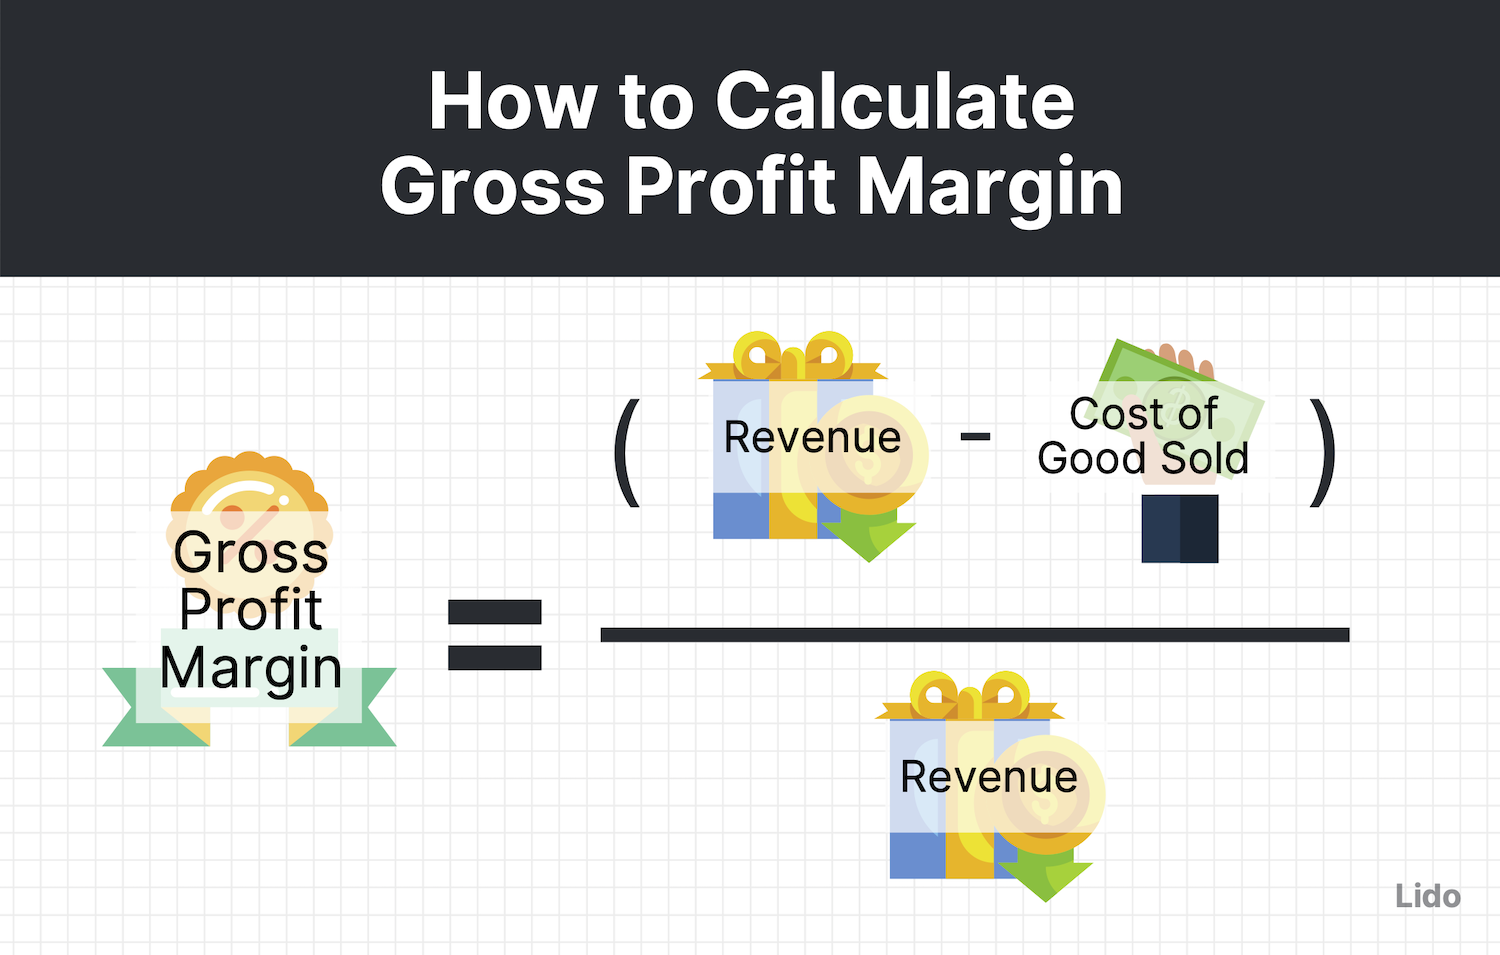 gross profit margin equation = [(revenue - cost of good sold)/revenue] with corresponding icons